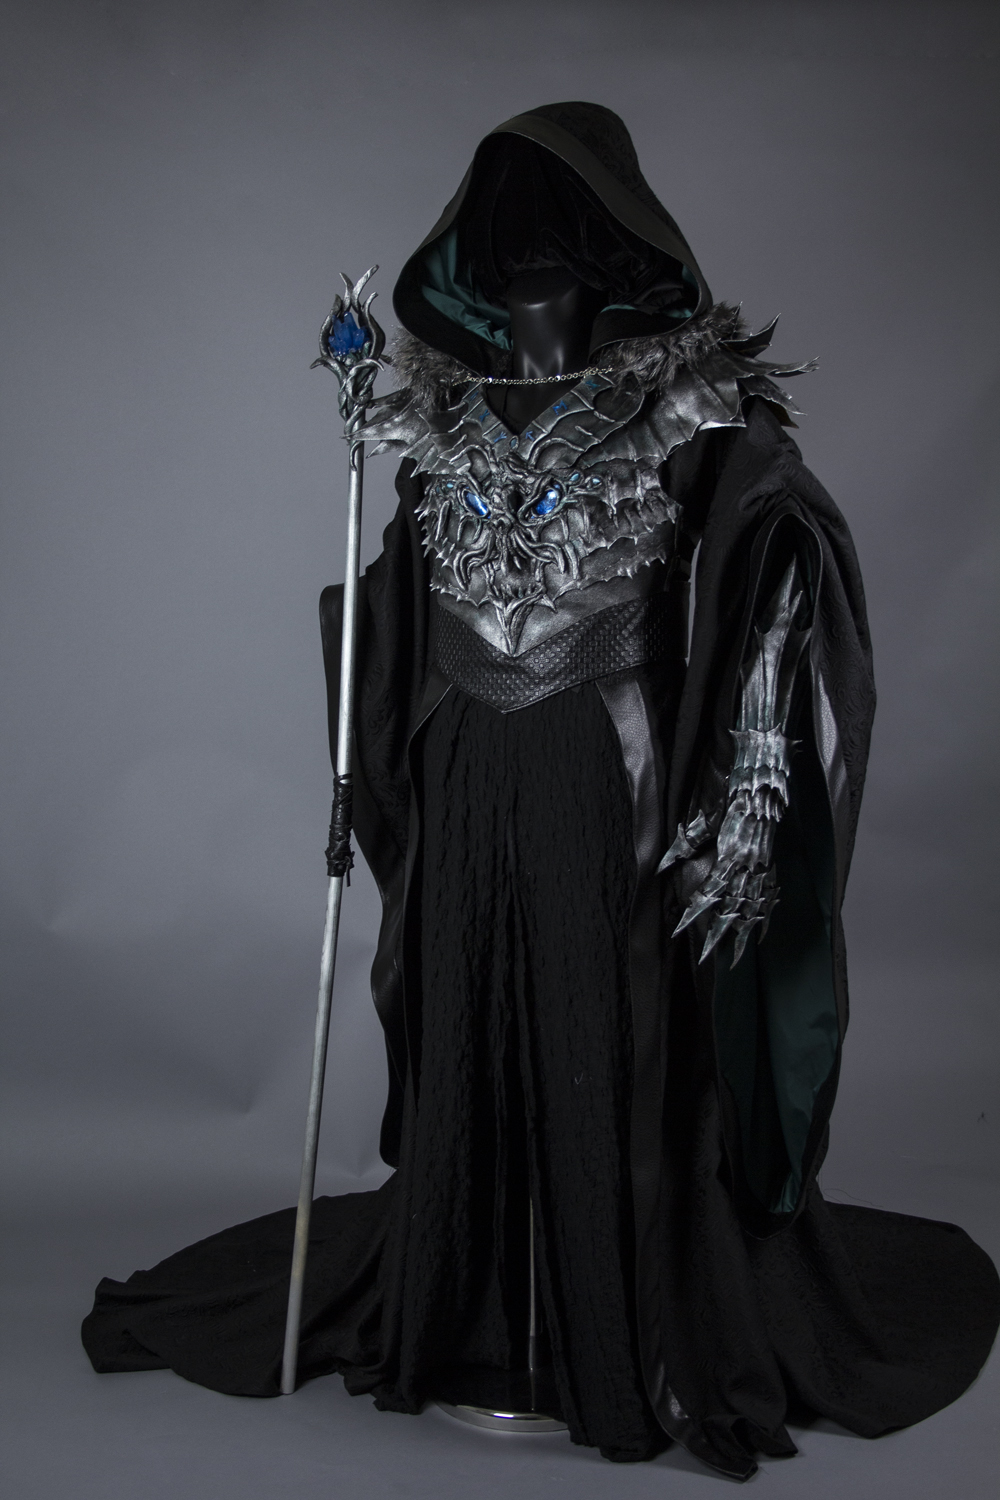 Crystal Ice mage